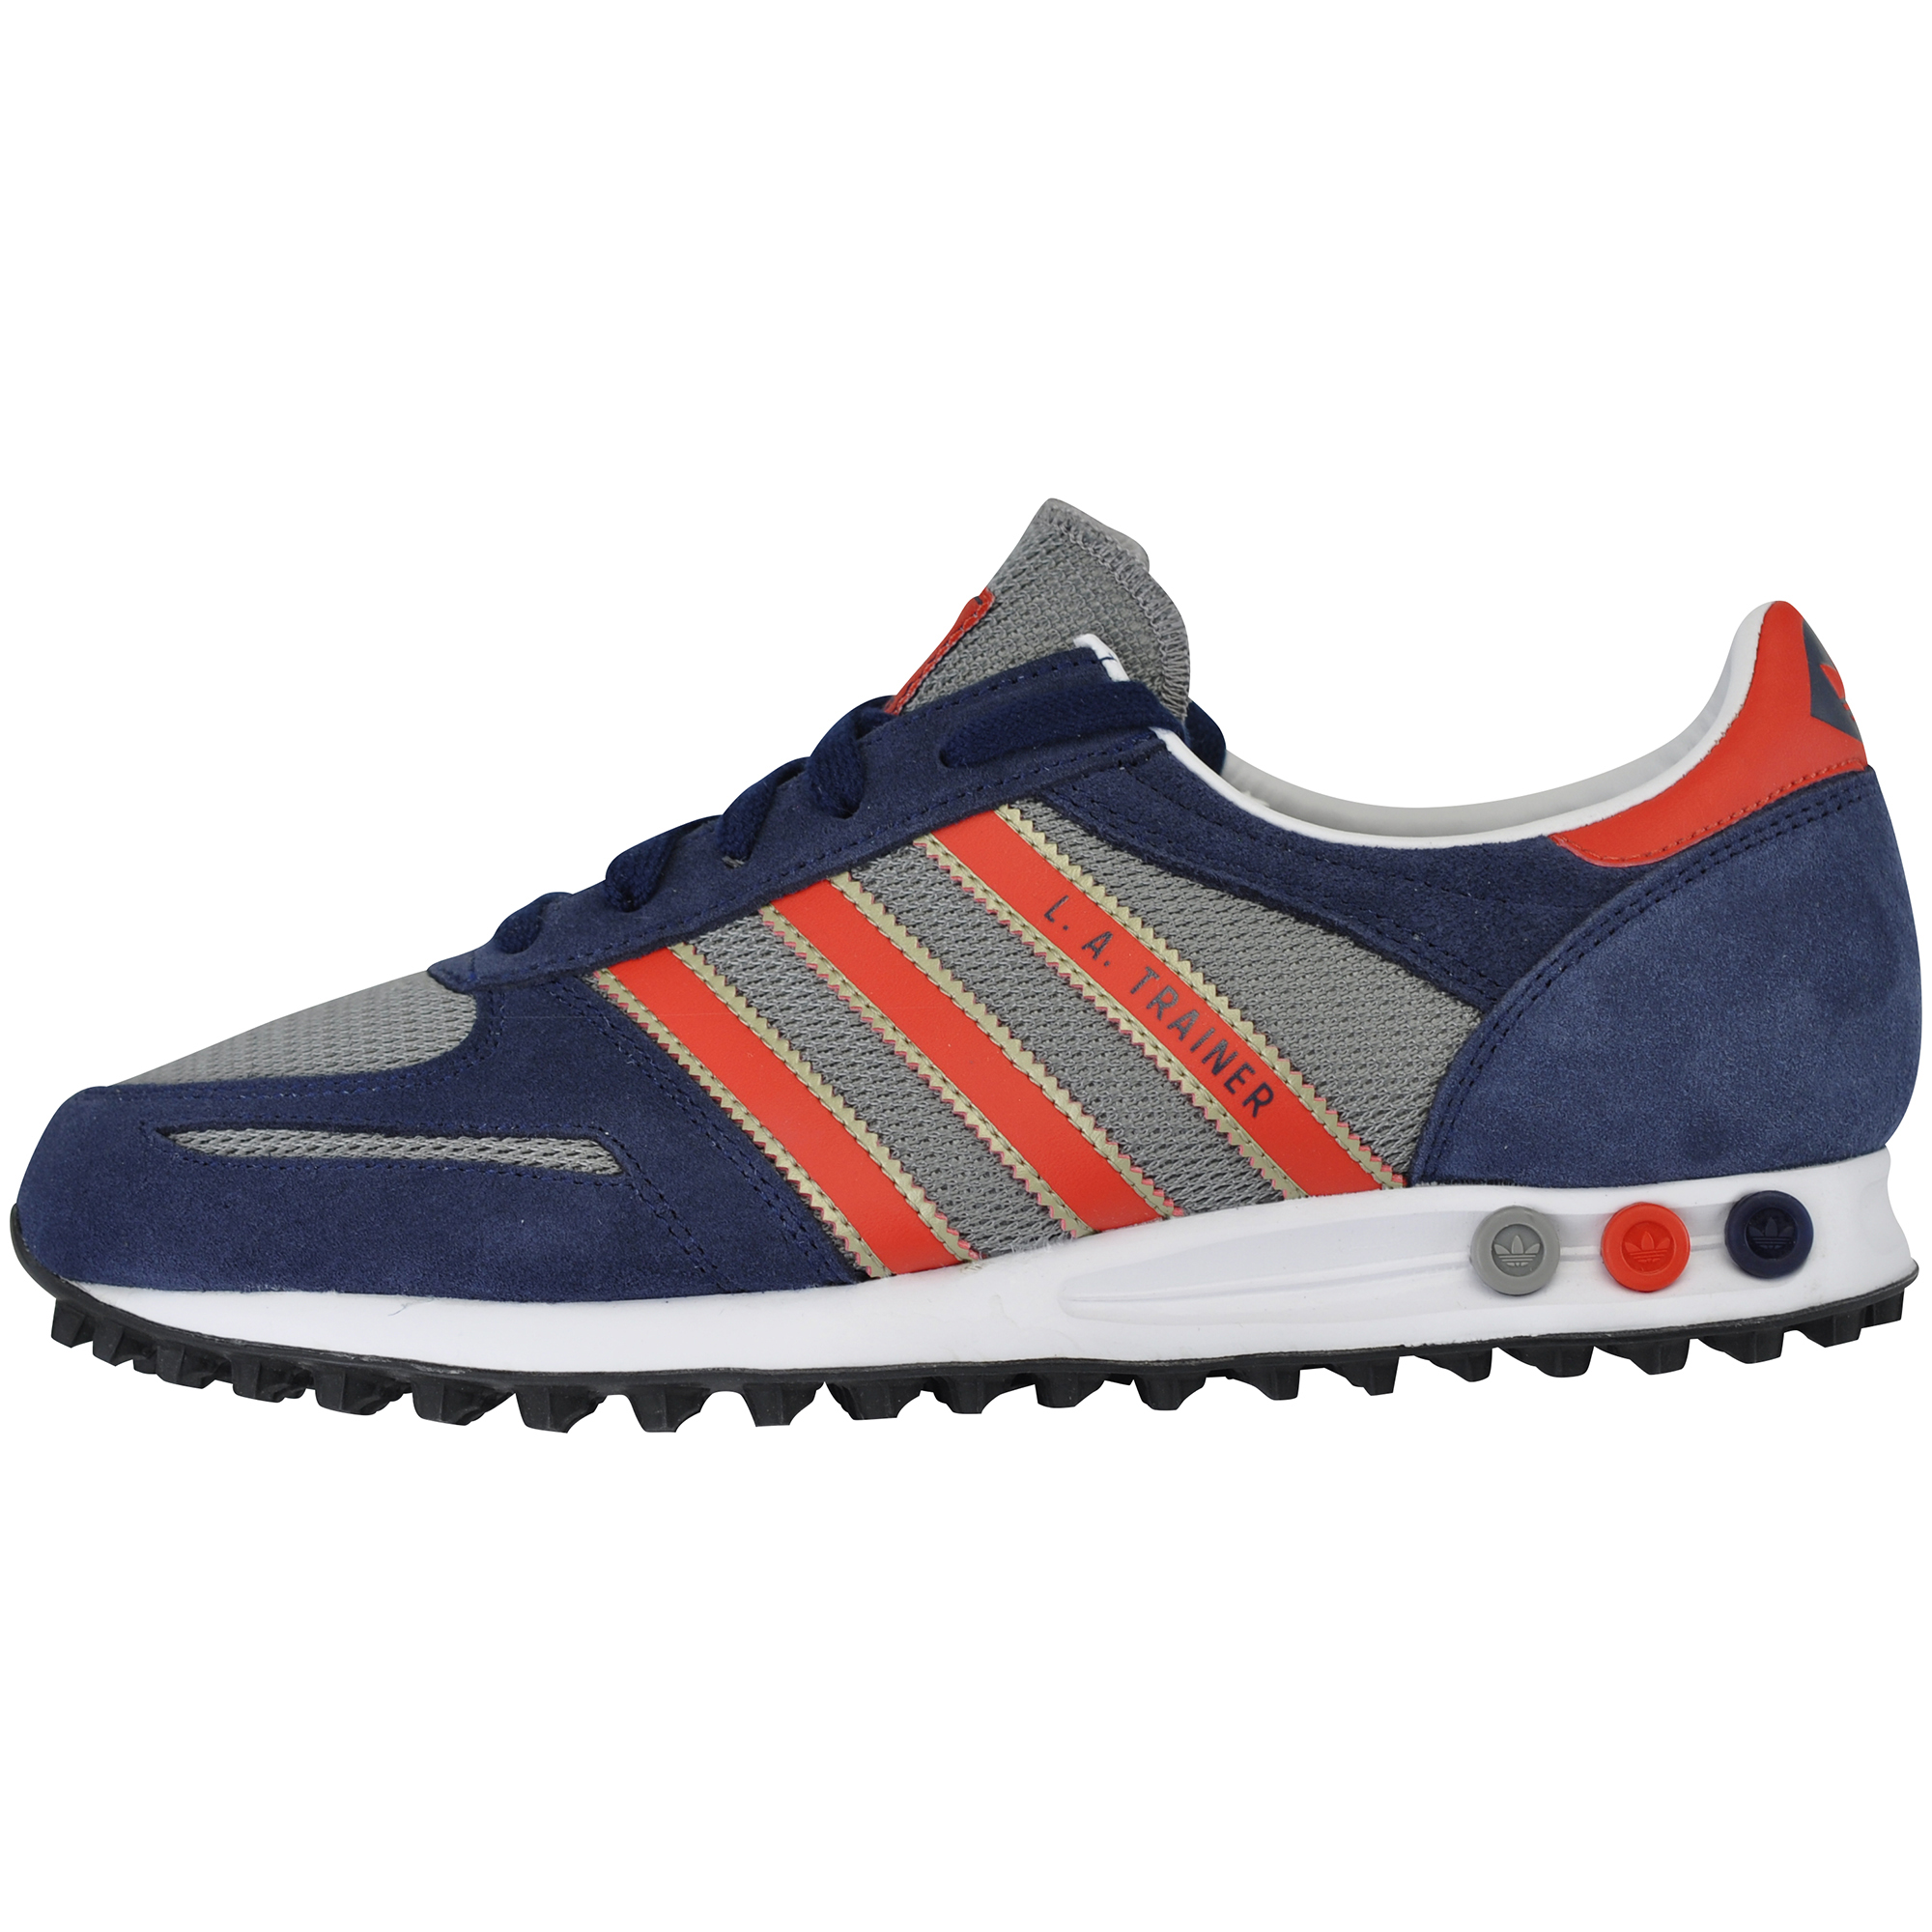 adidas la trainer zx 750 adi racer herren schuhe. Black Bedroom Furniture Sets. Home Design Ideas